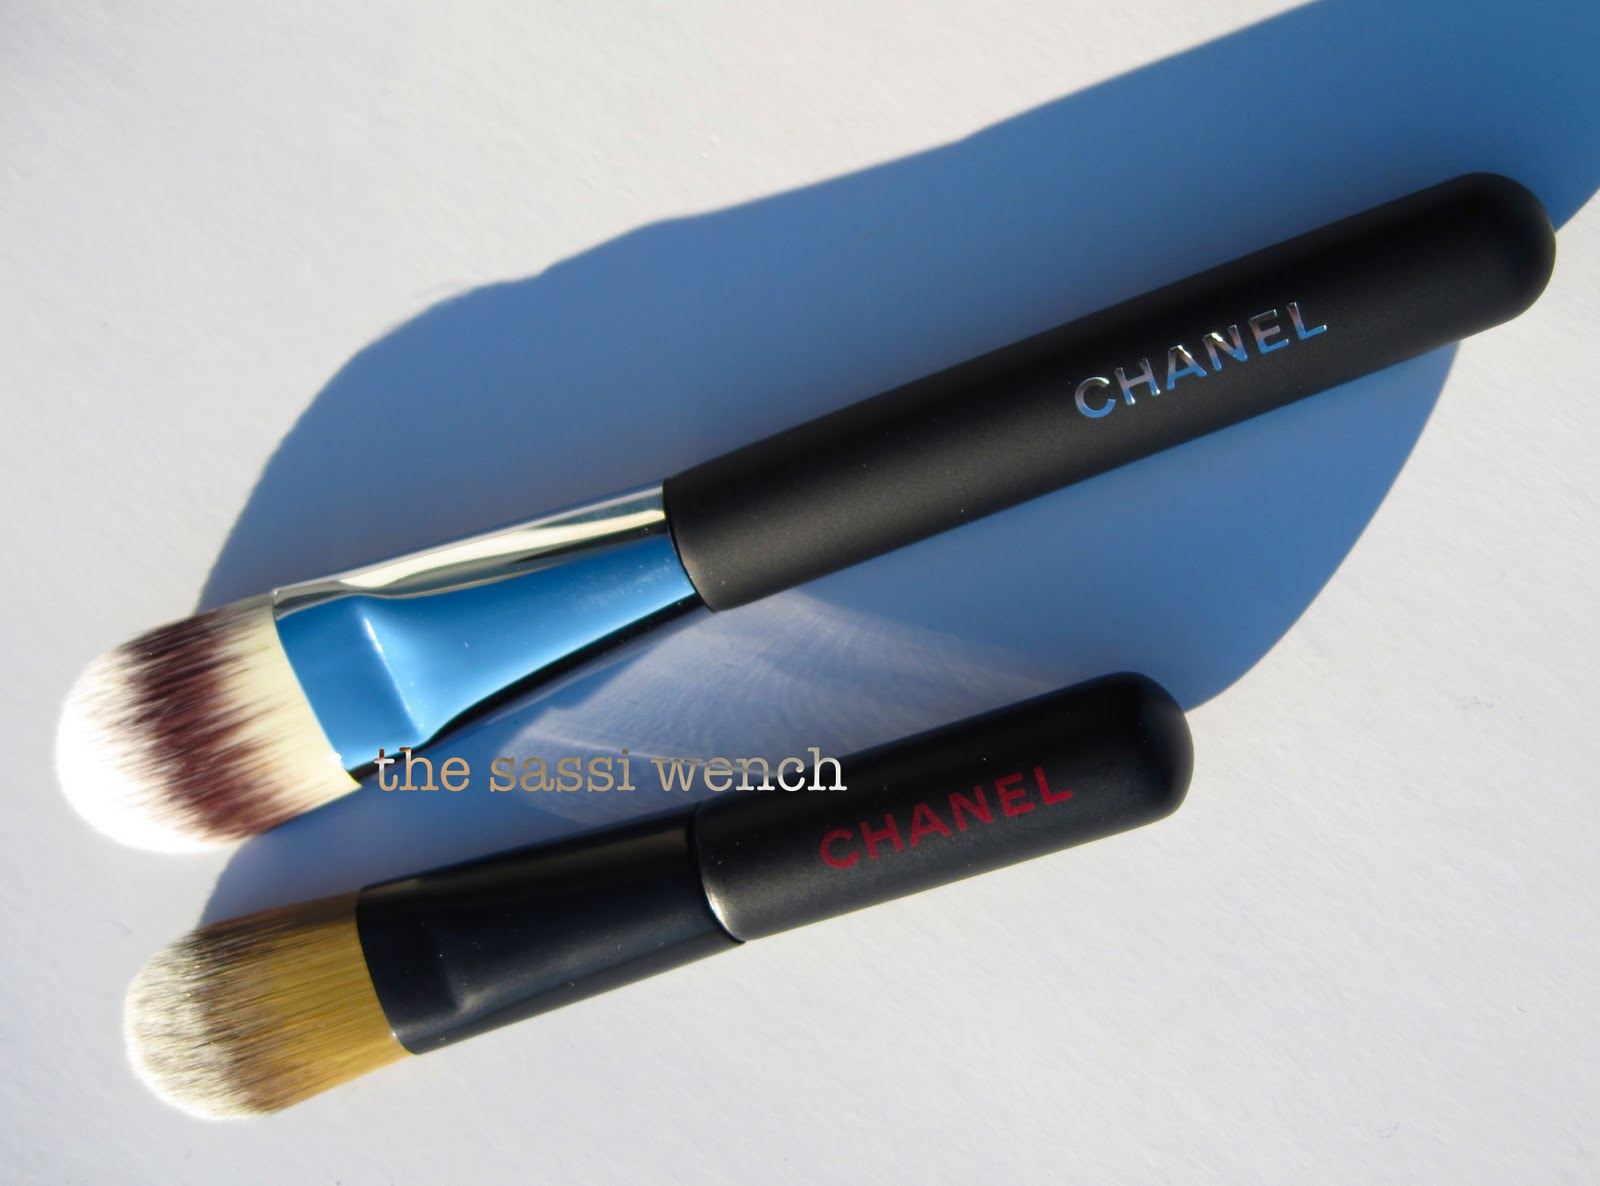 0a12c579a29 Chanel Foundation Brush  6 versus the Les Minis foundation brush.